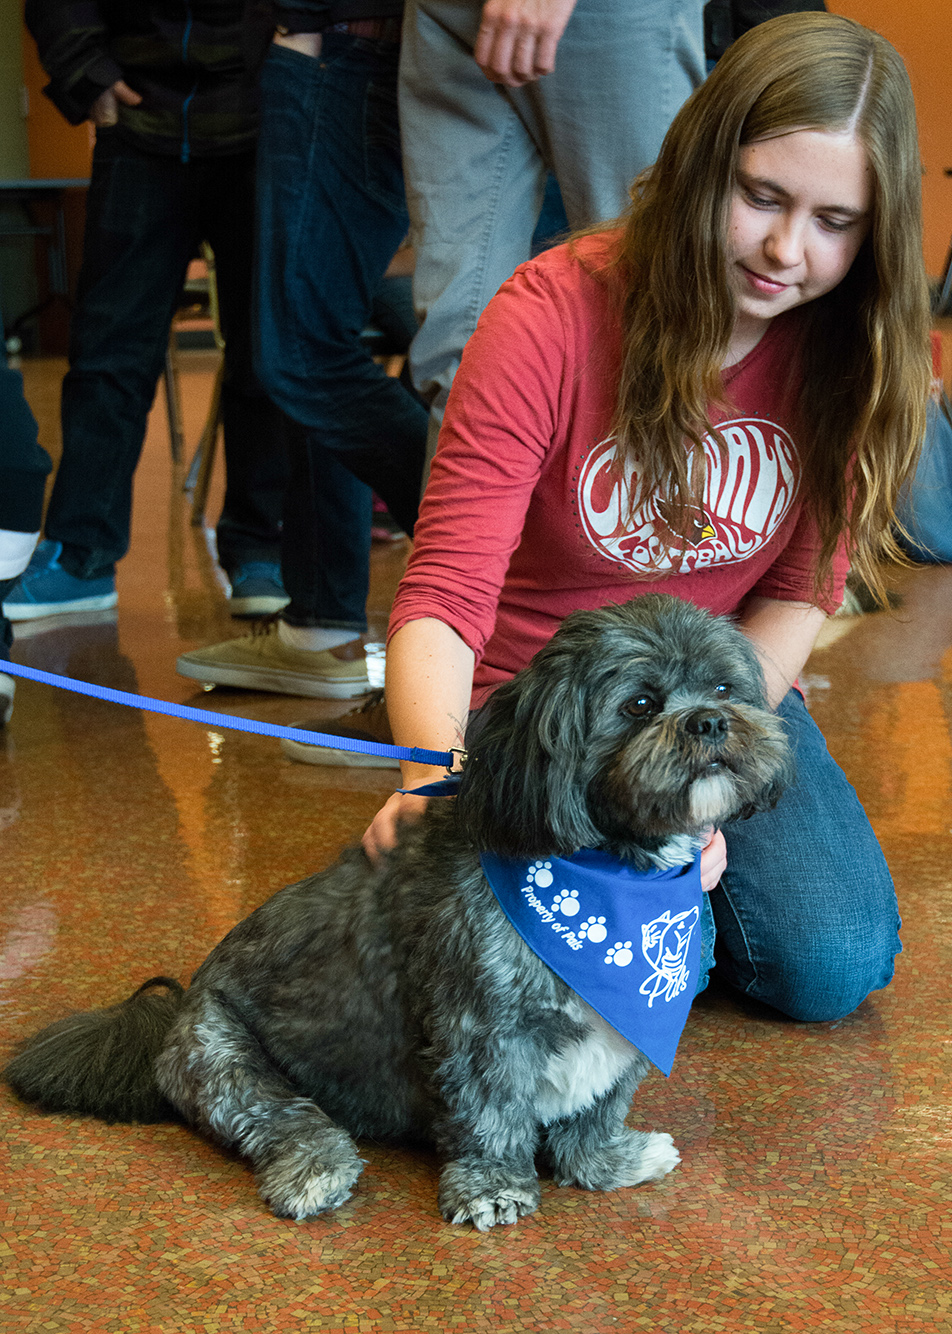 Pet a Puppy: SAIT students got to spend some quality time with a group of puppies at the Pet a Puppy event held in the Campus Centre at SAIT. The event featured lots of furry-faced friends who were on hand for students and staff to pet as a means of relieving stress.